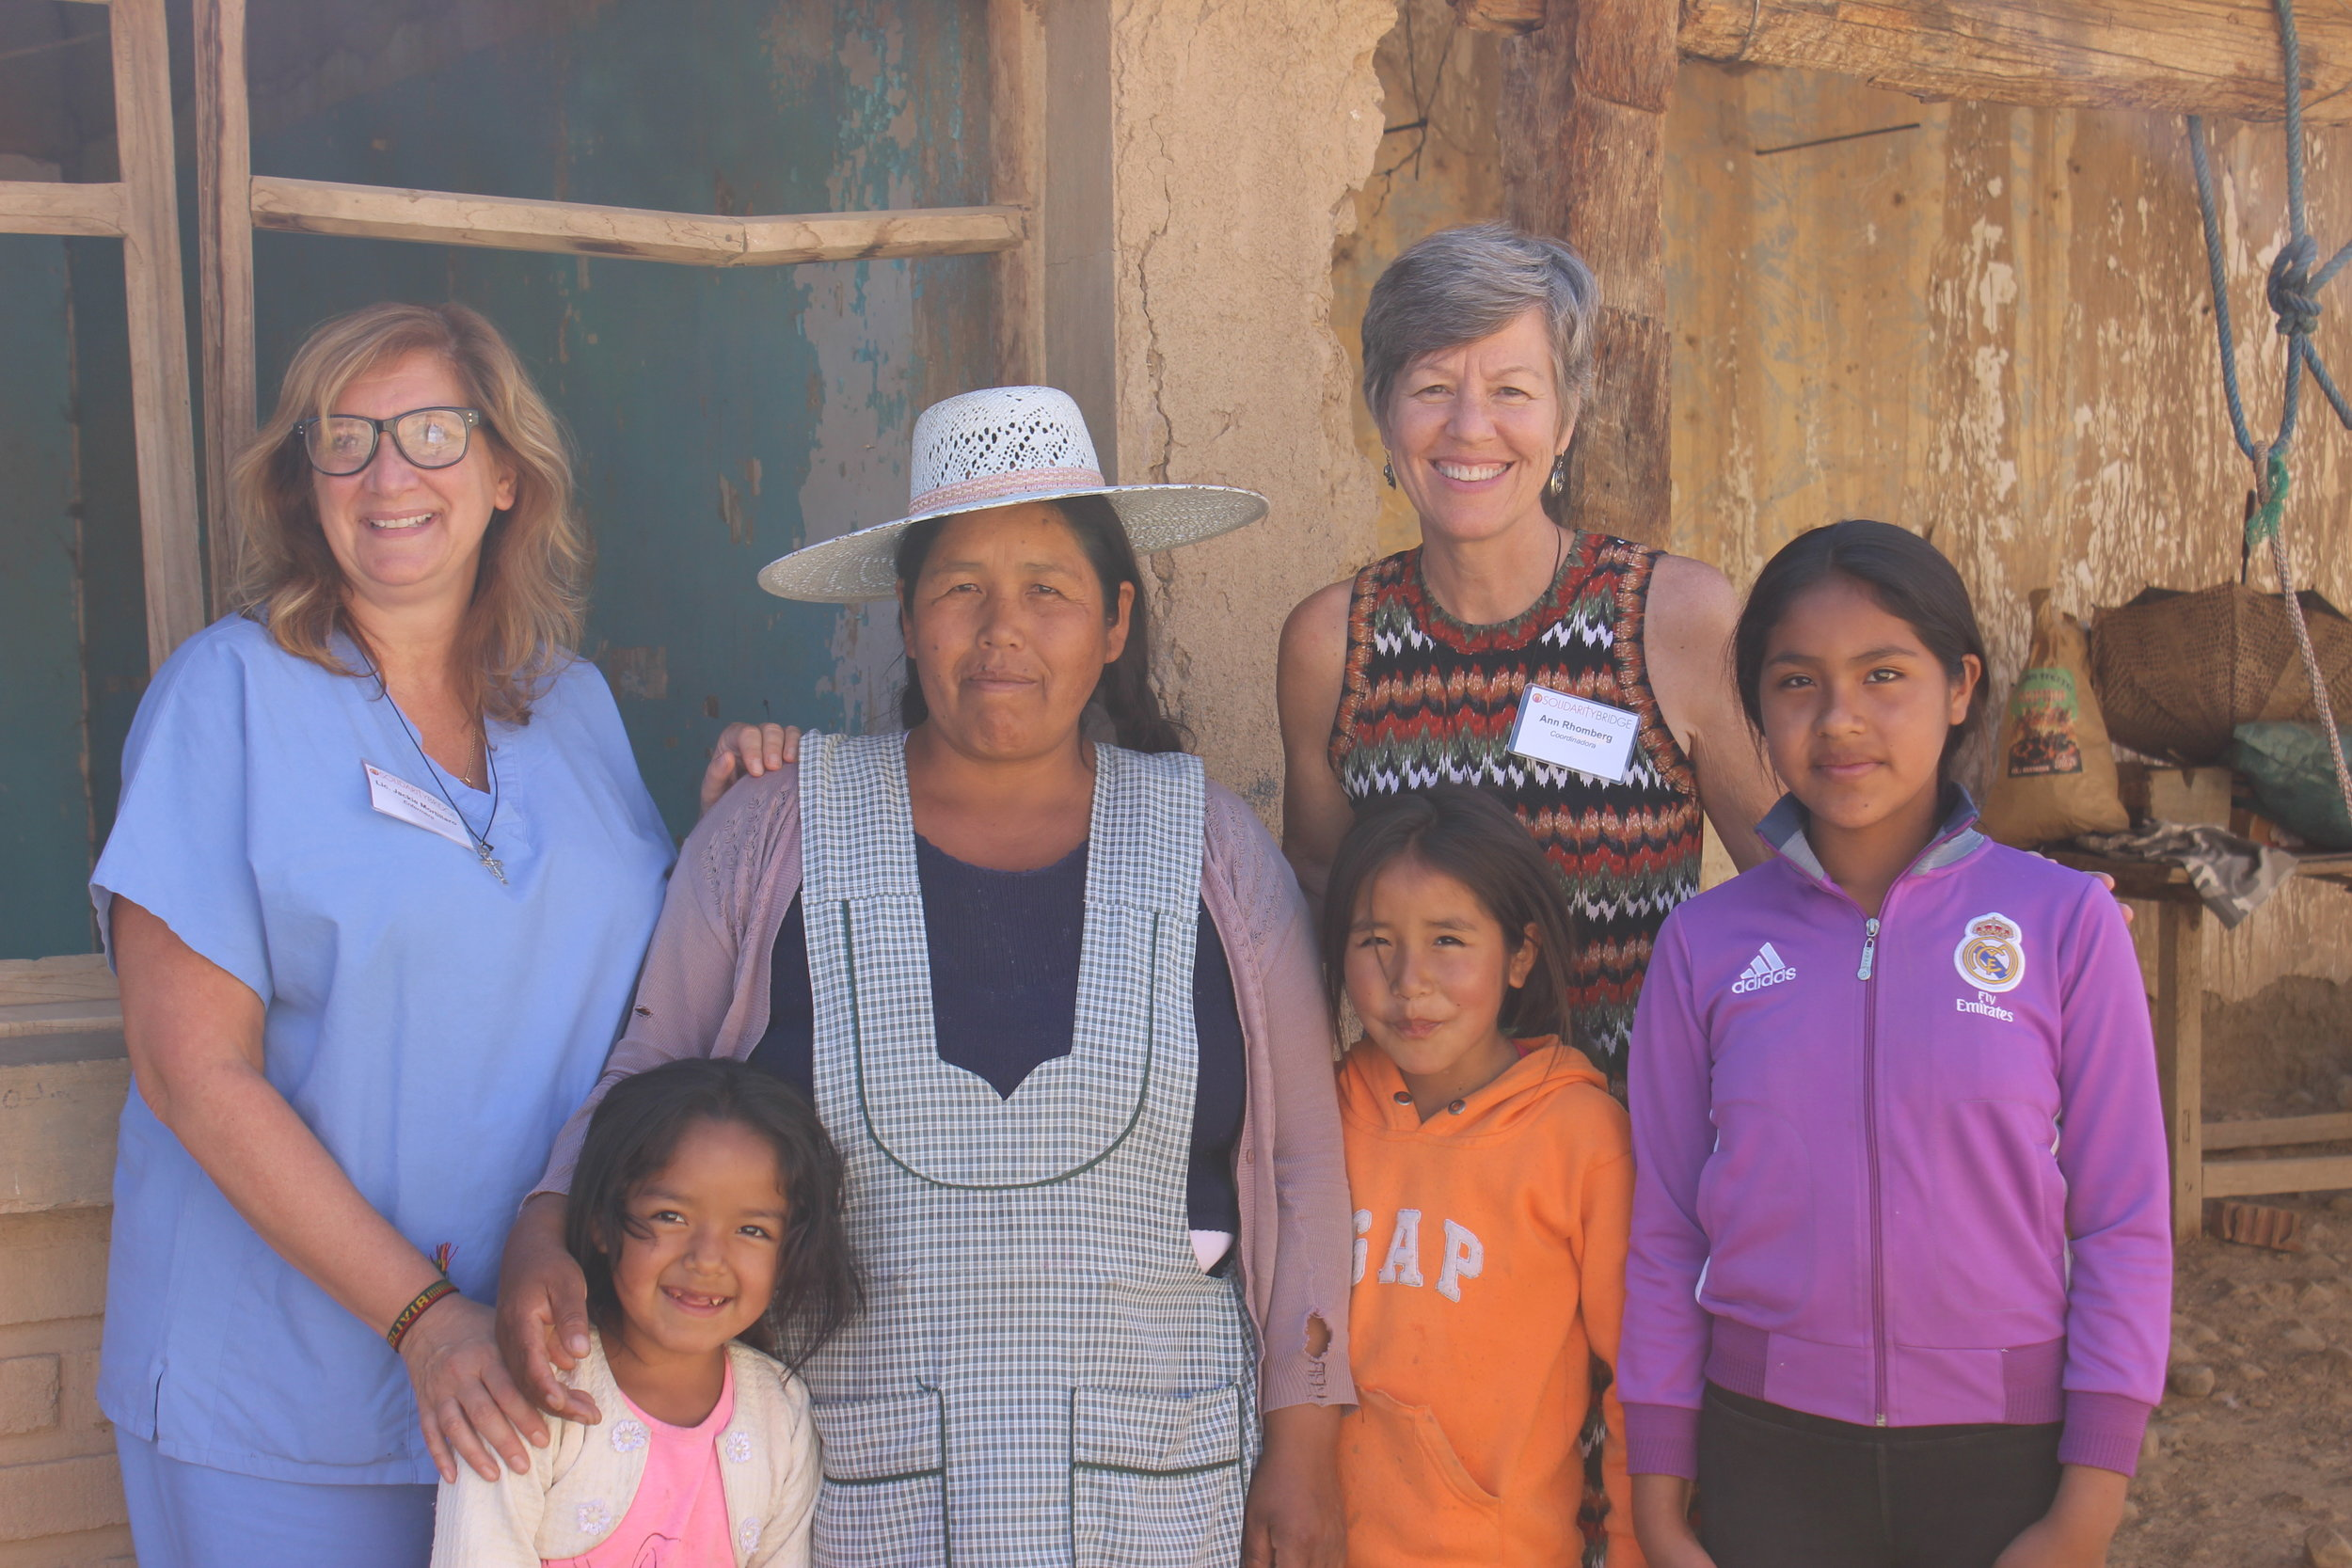 Two of our missioners visit with Sarah and her daughters at their home.